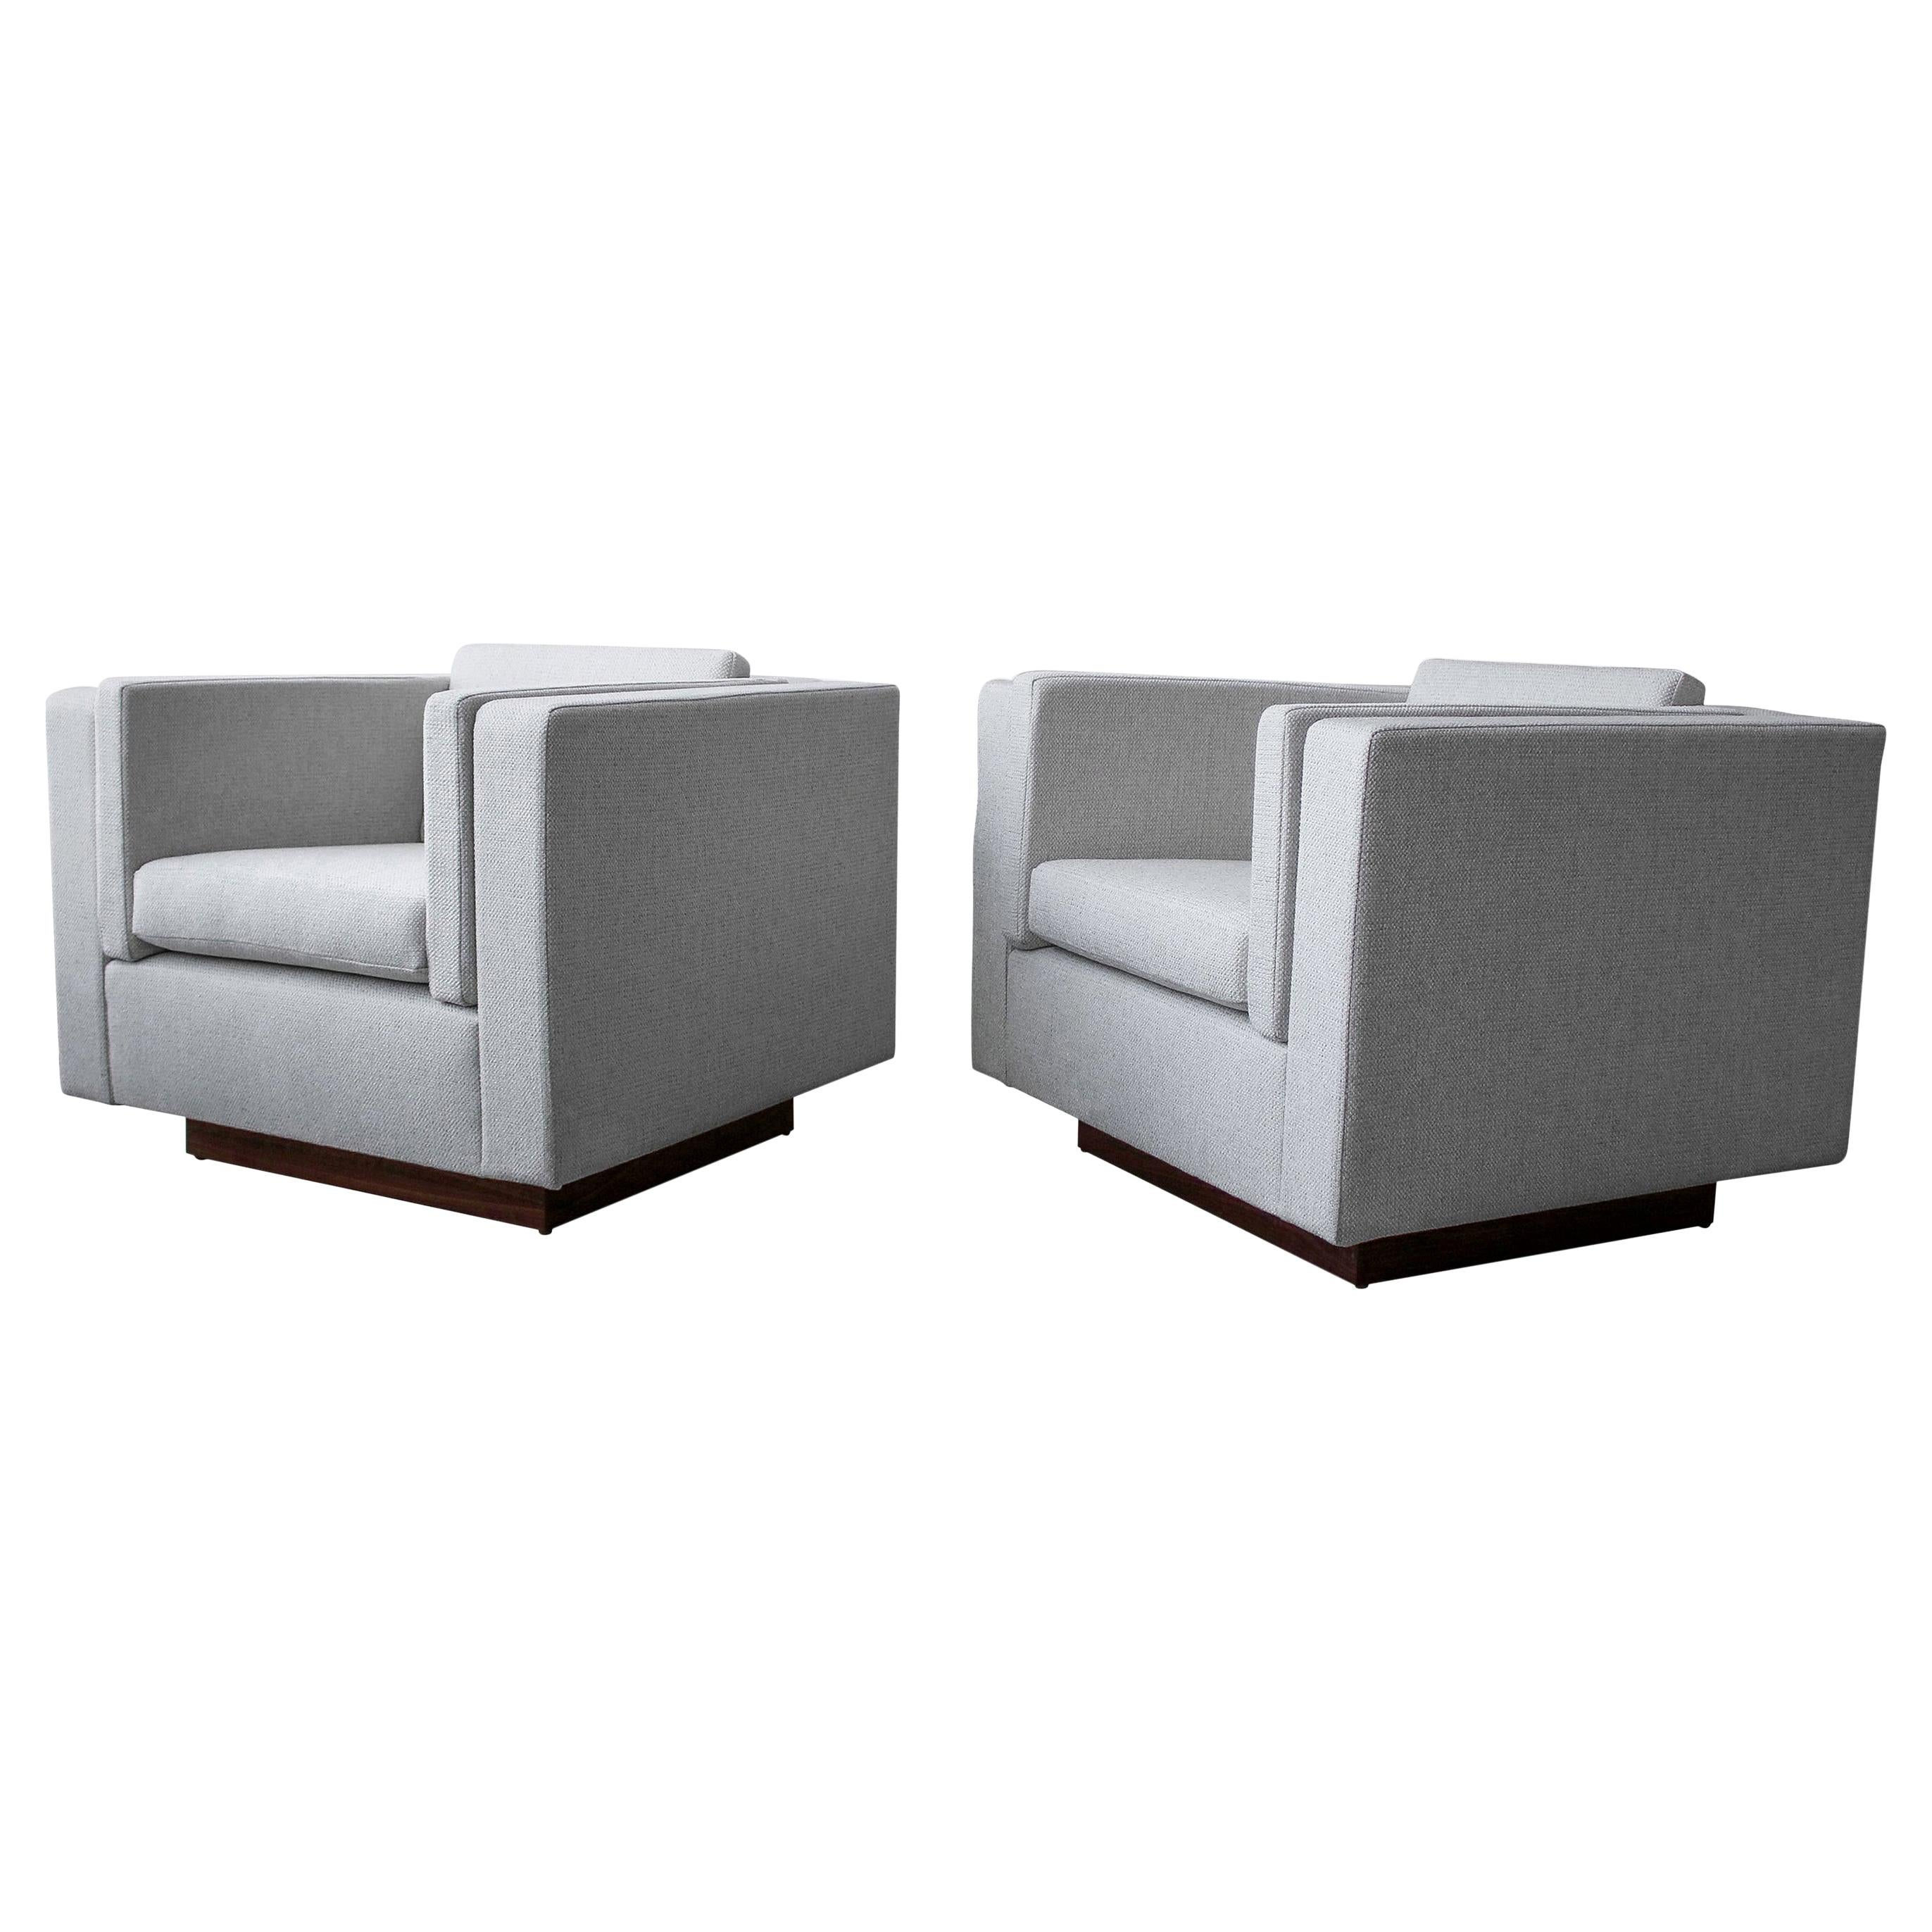 Pair of Midcentury Cube Lounge Chairs